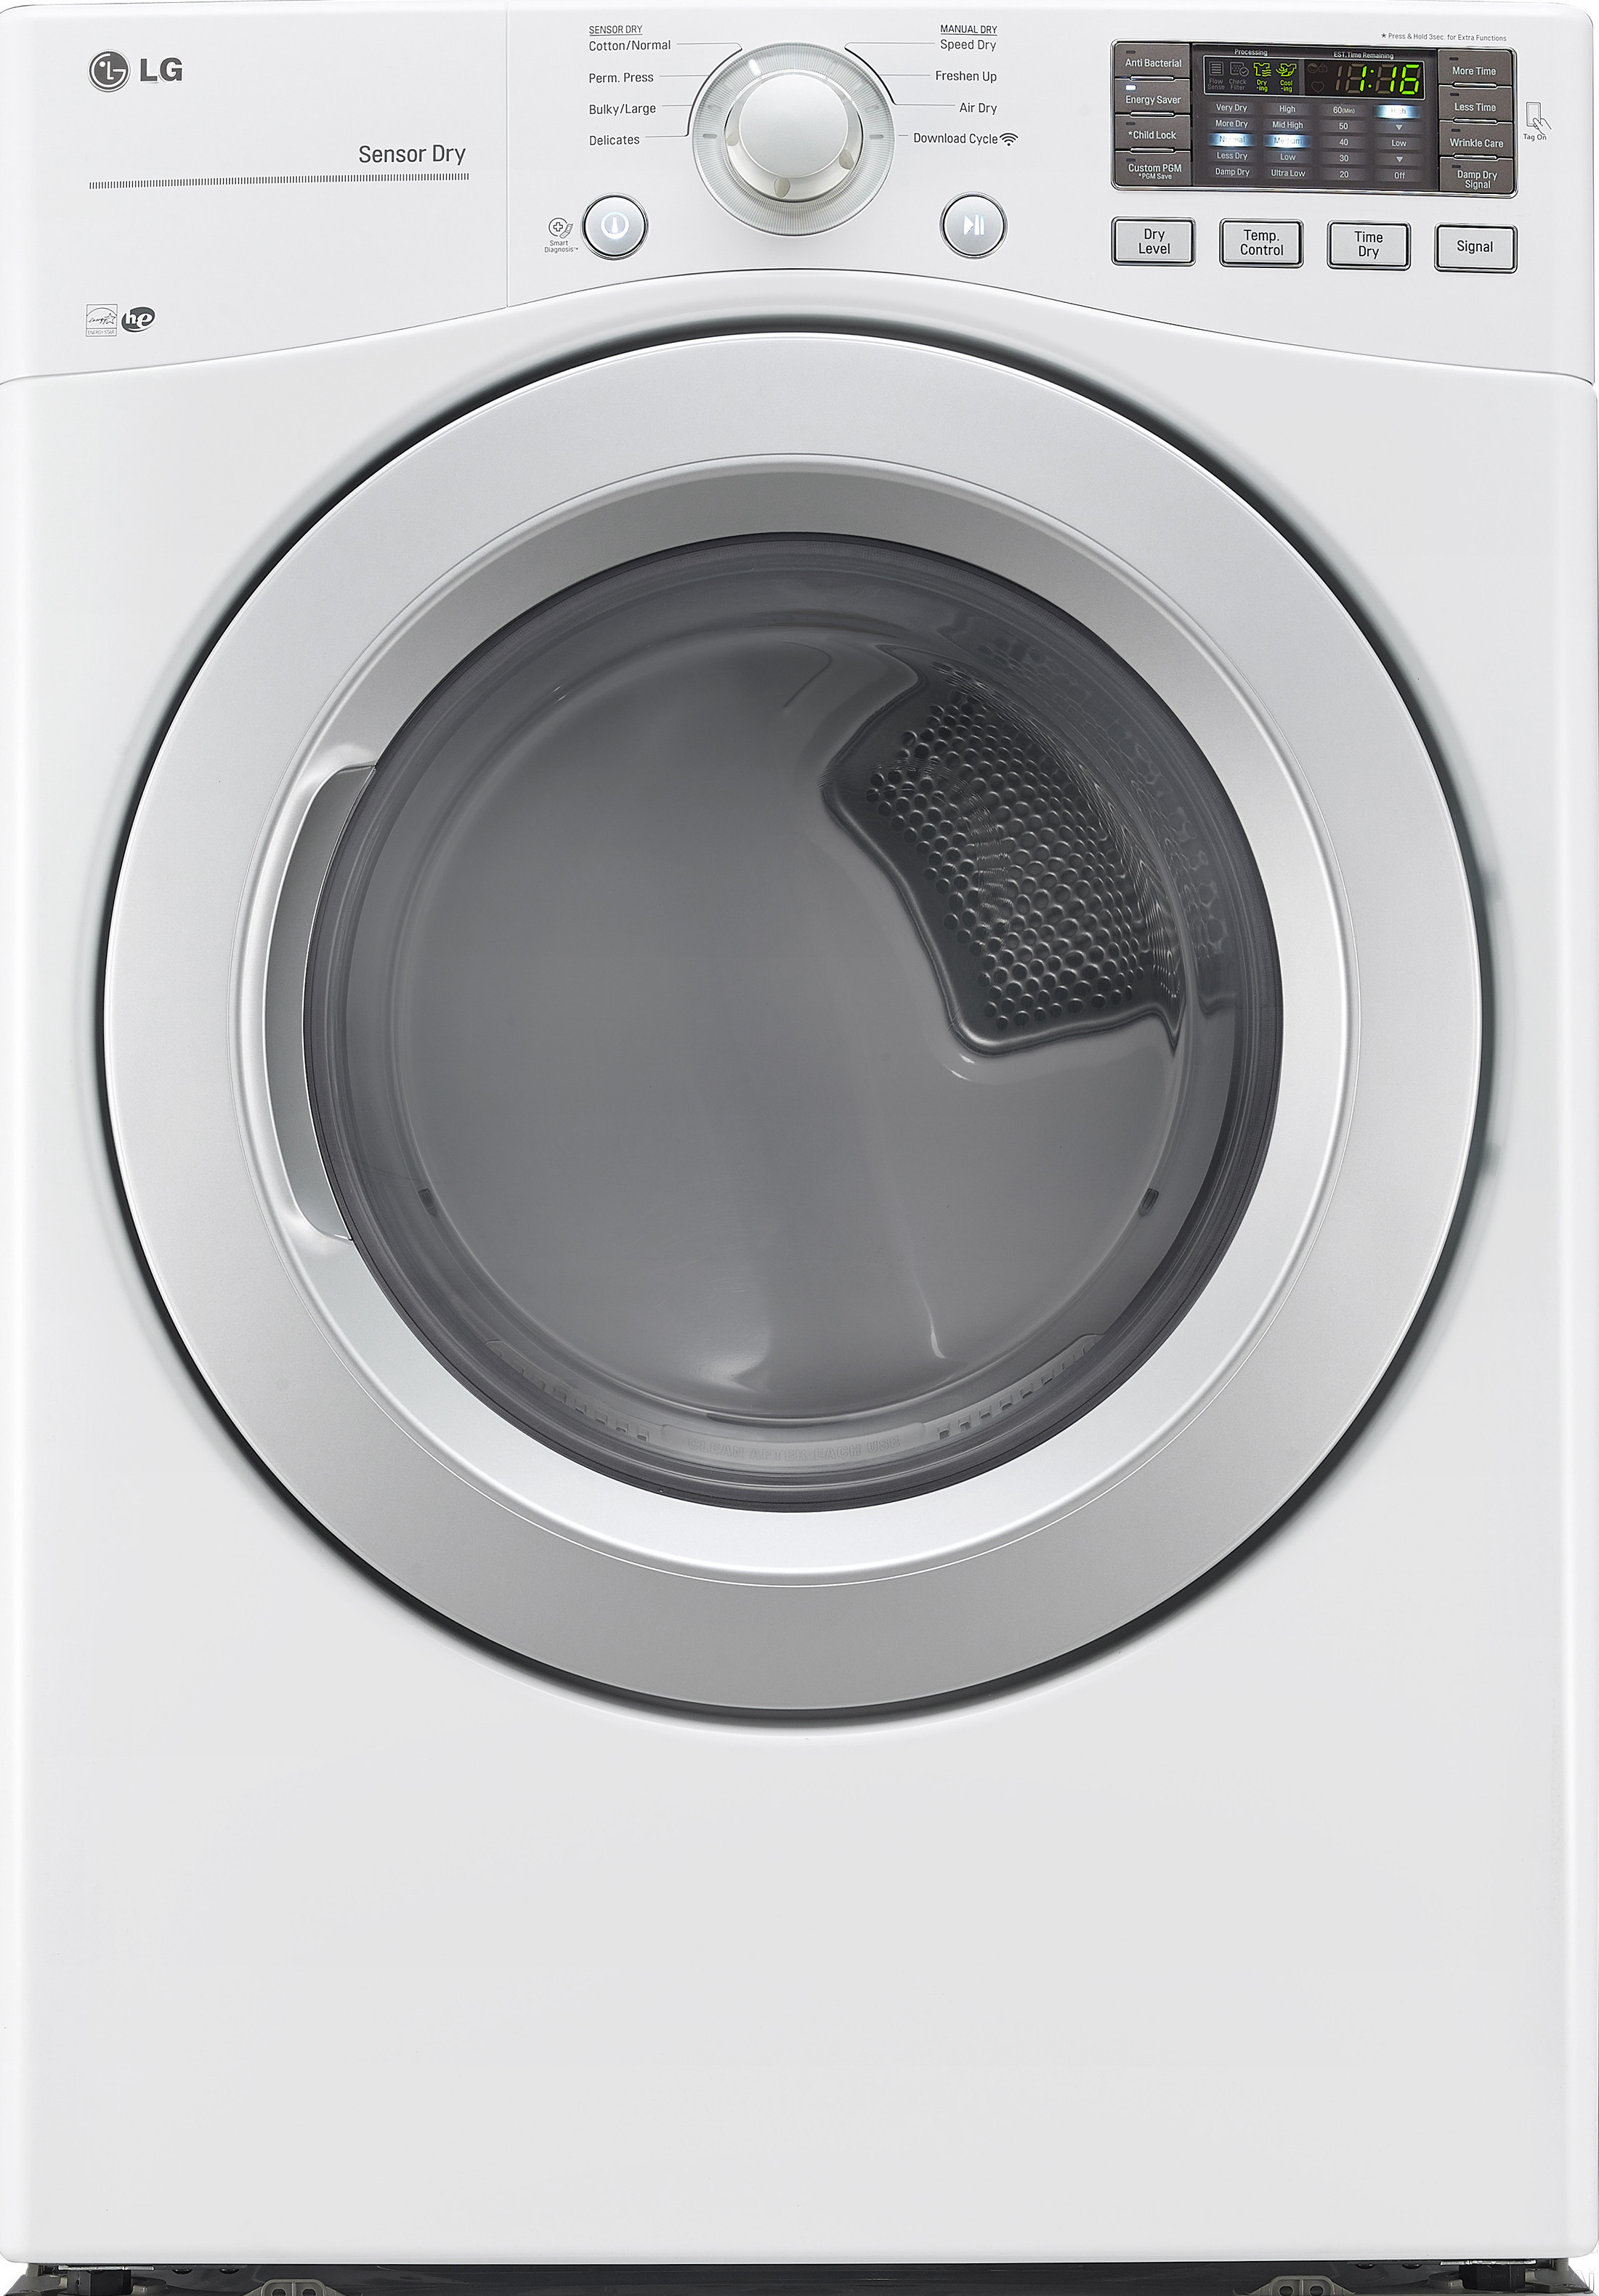 LG DLE3170W 27 Inch Electric Dryer with Wrinkle Care Sensor Dry NFC Tag On Anti Bacterial Cycle Speed Dry 8 Drying Programs Smart Diagnosis LoDecibel Quiet Operation ENERGY STAR and 7.4 cu. ft. Capaci